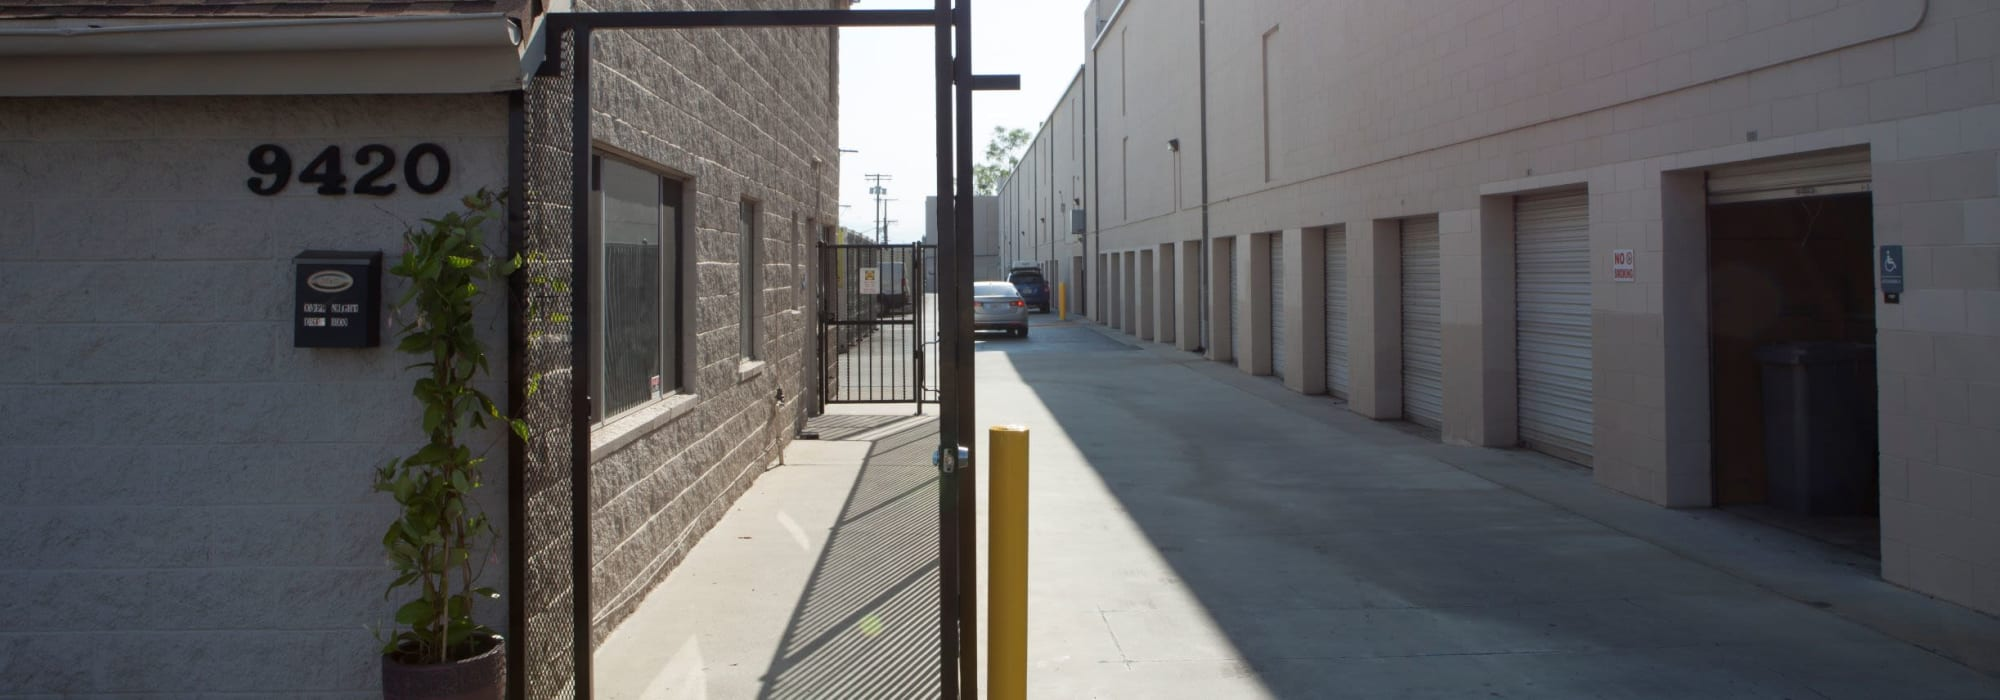 Self storage in Chatsworth CA